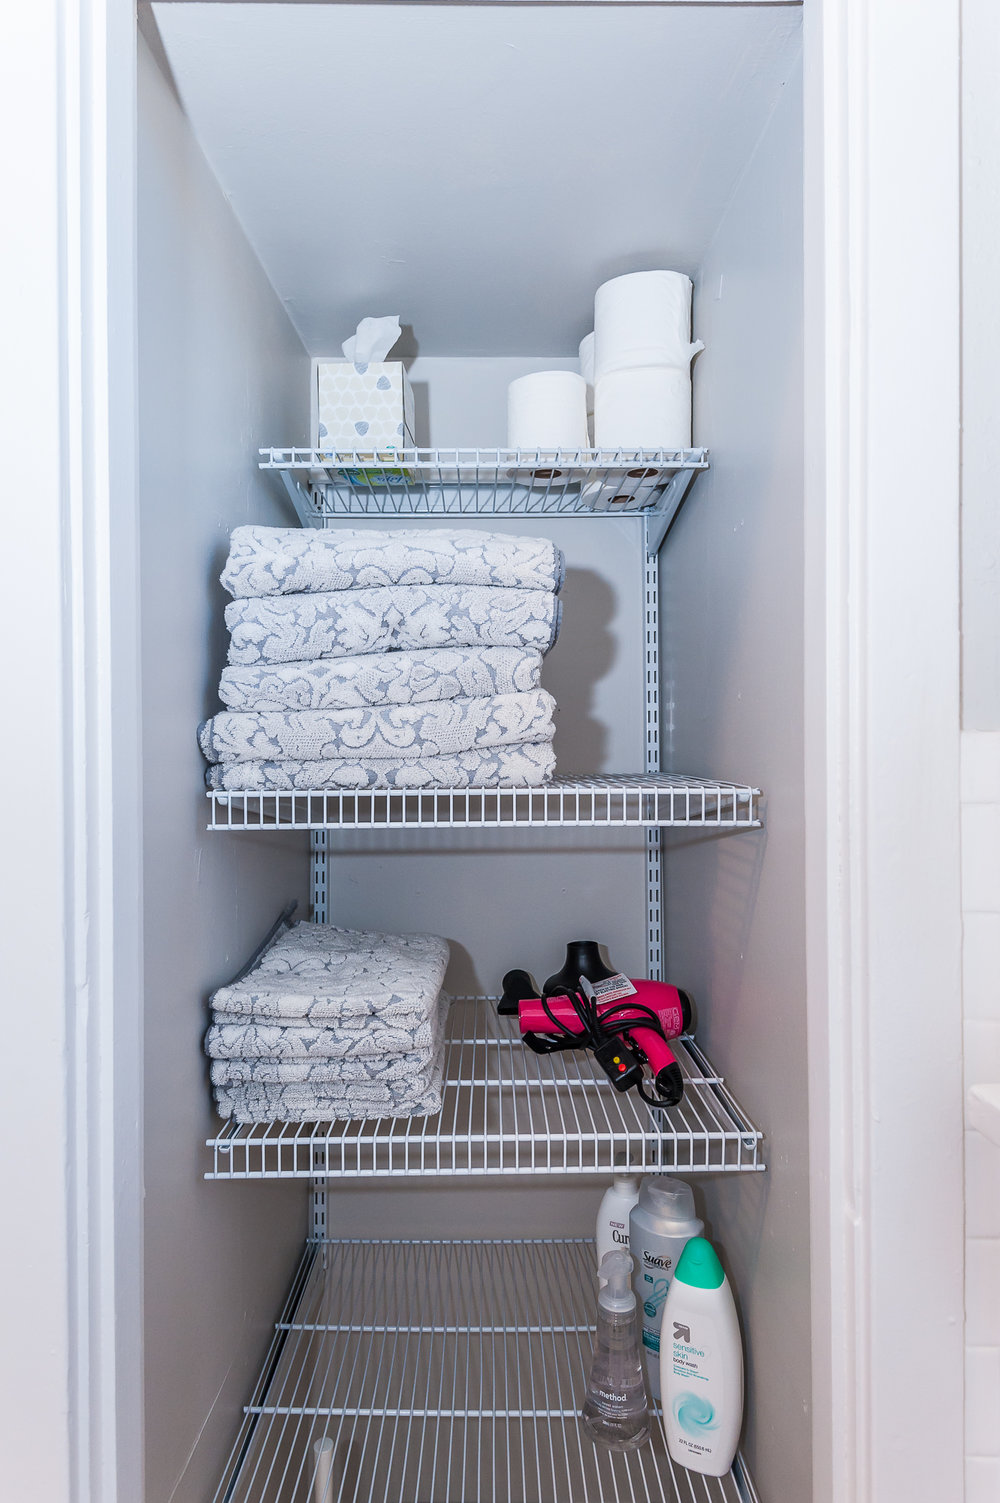 All linens, towels, and bedding included.